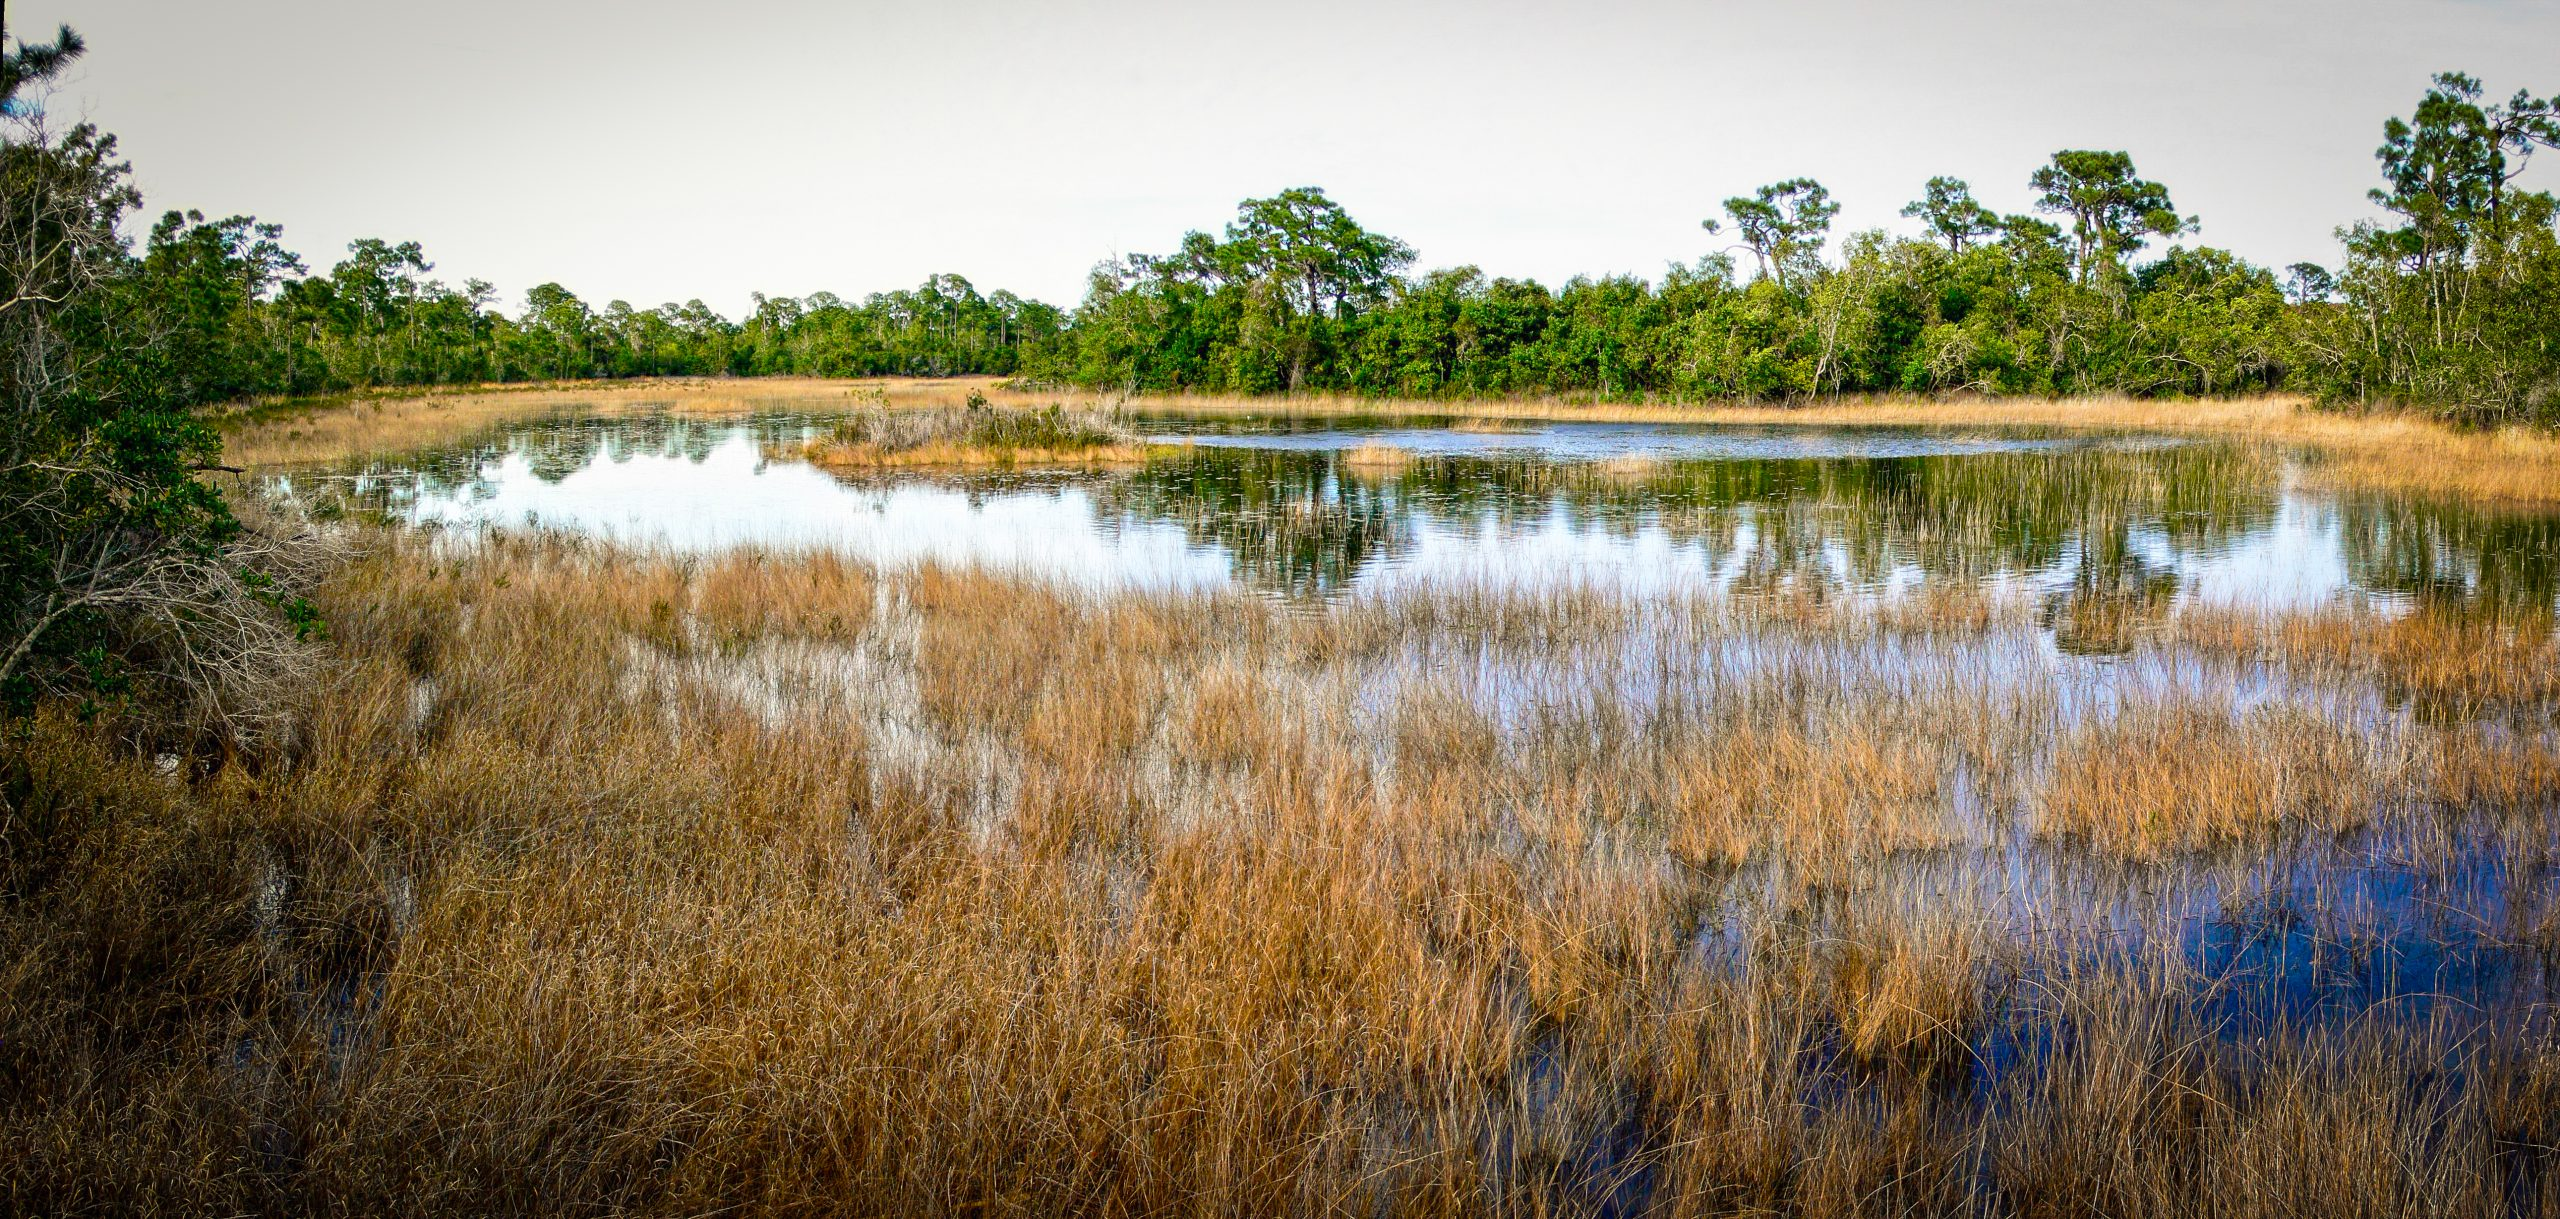 Grassy water view on nature preserve